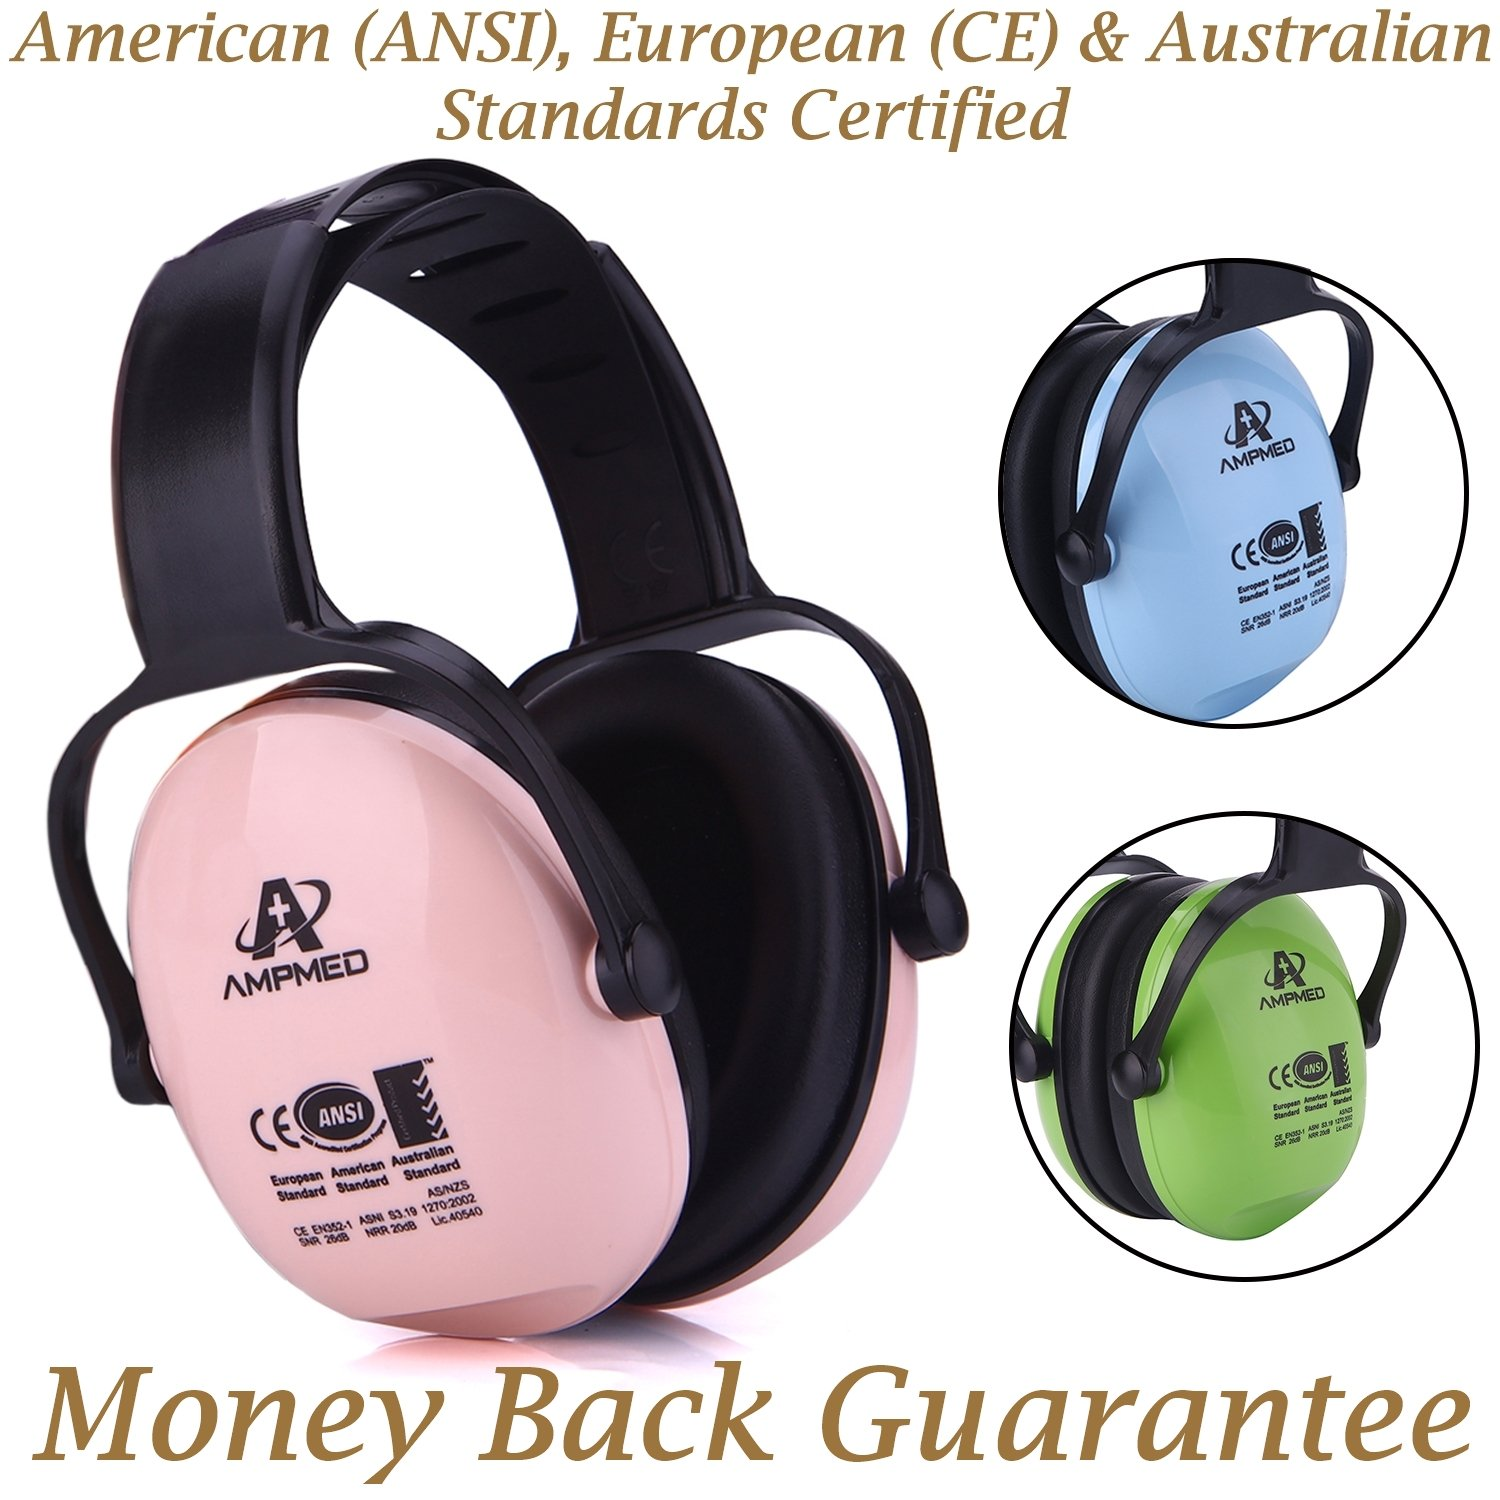 ecb7d1f2cae Amazon.com : Amplim Hearing Protection Earmuff for Toddlers, Teens and  Adults. Noise Cancelling Headphones for Kids. Autism Spectrum Ear Defenders  ...